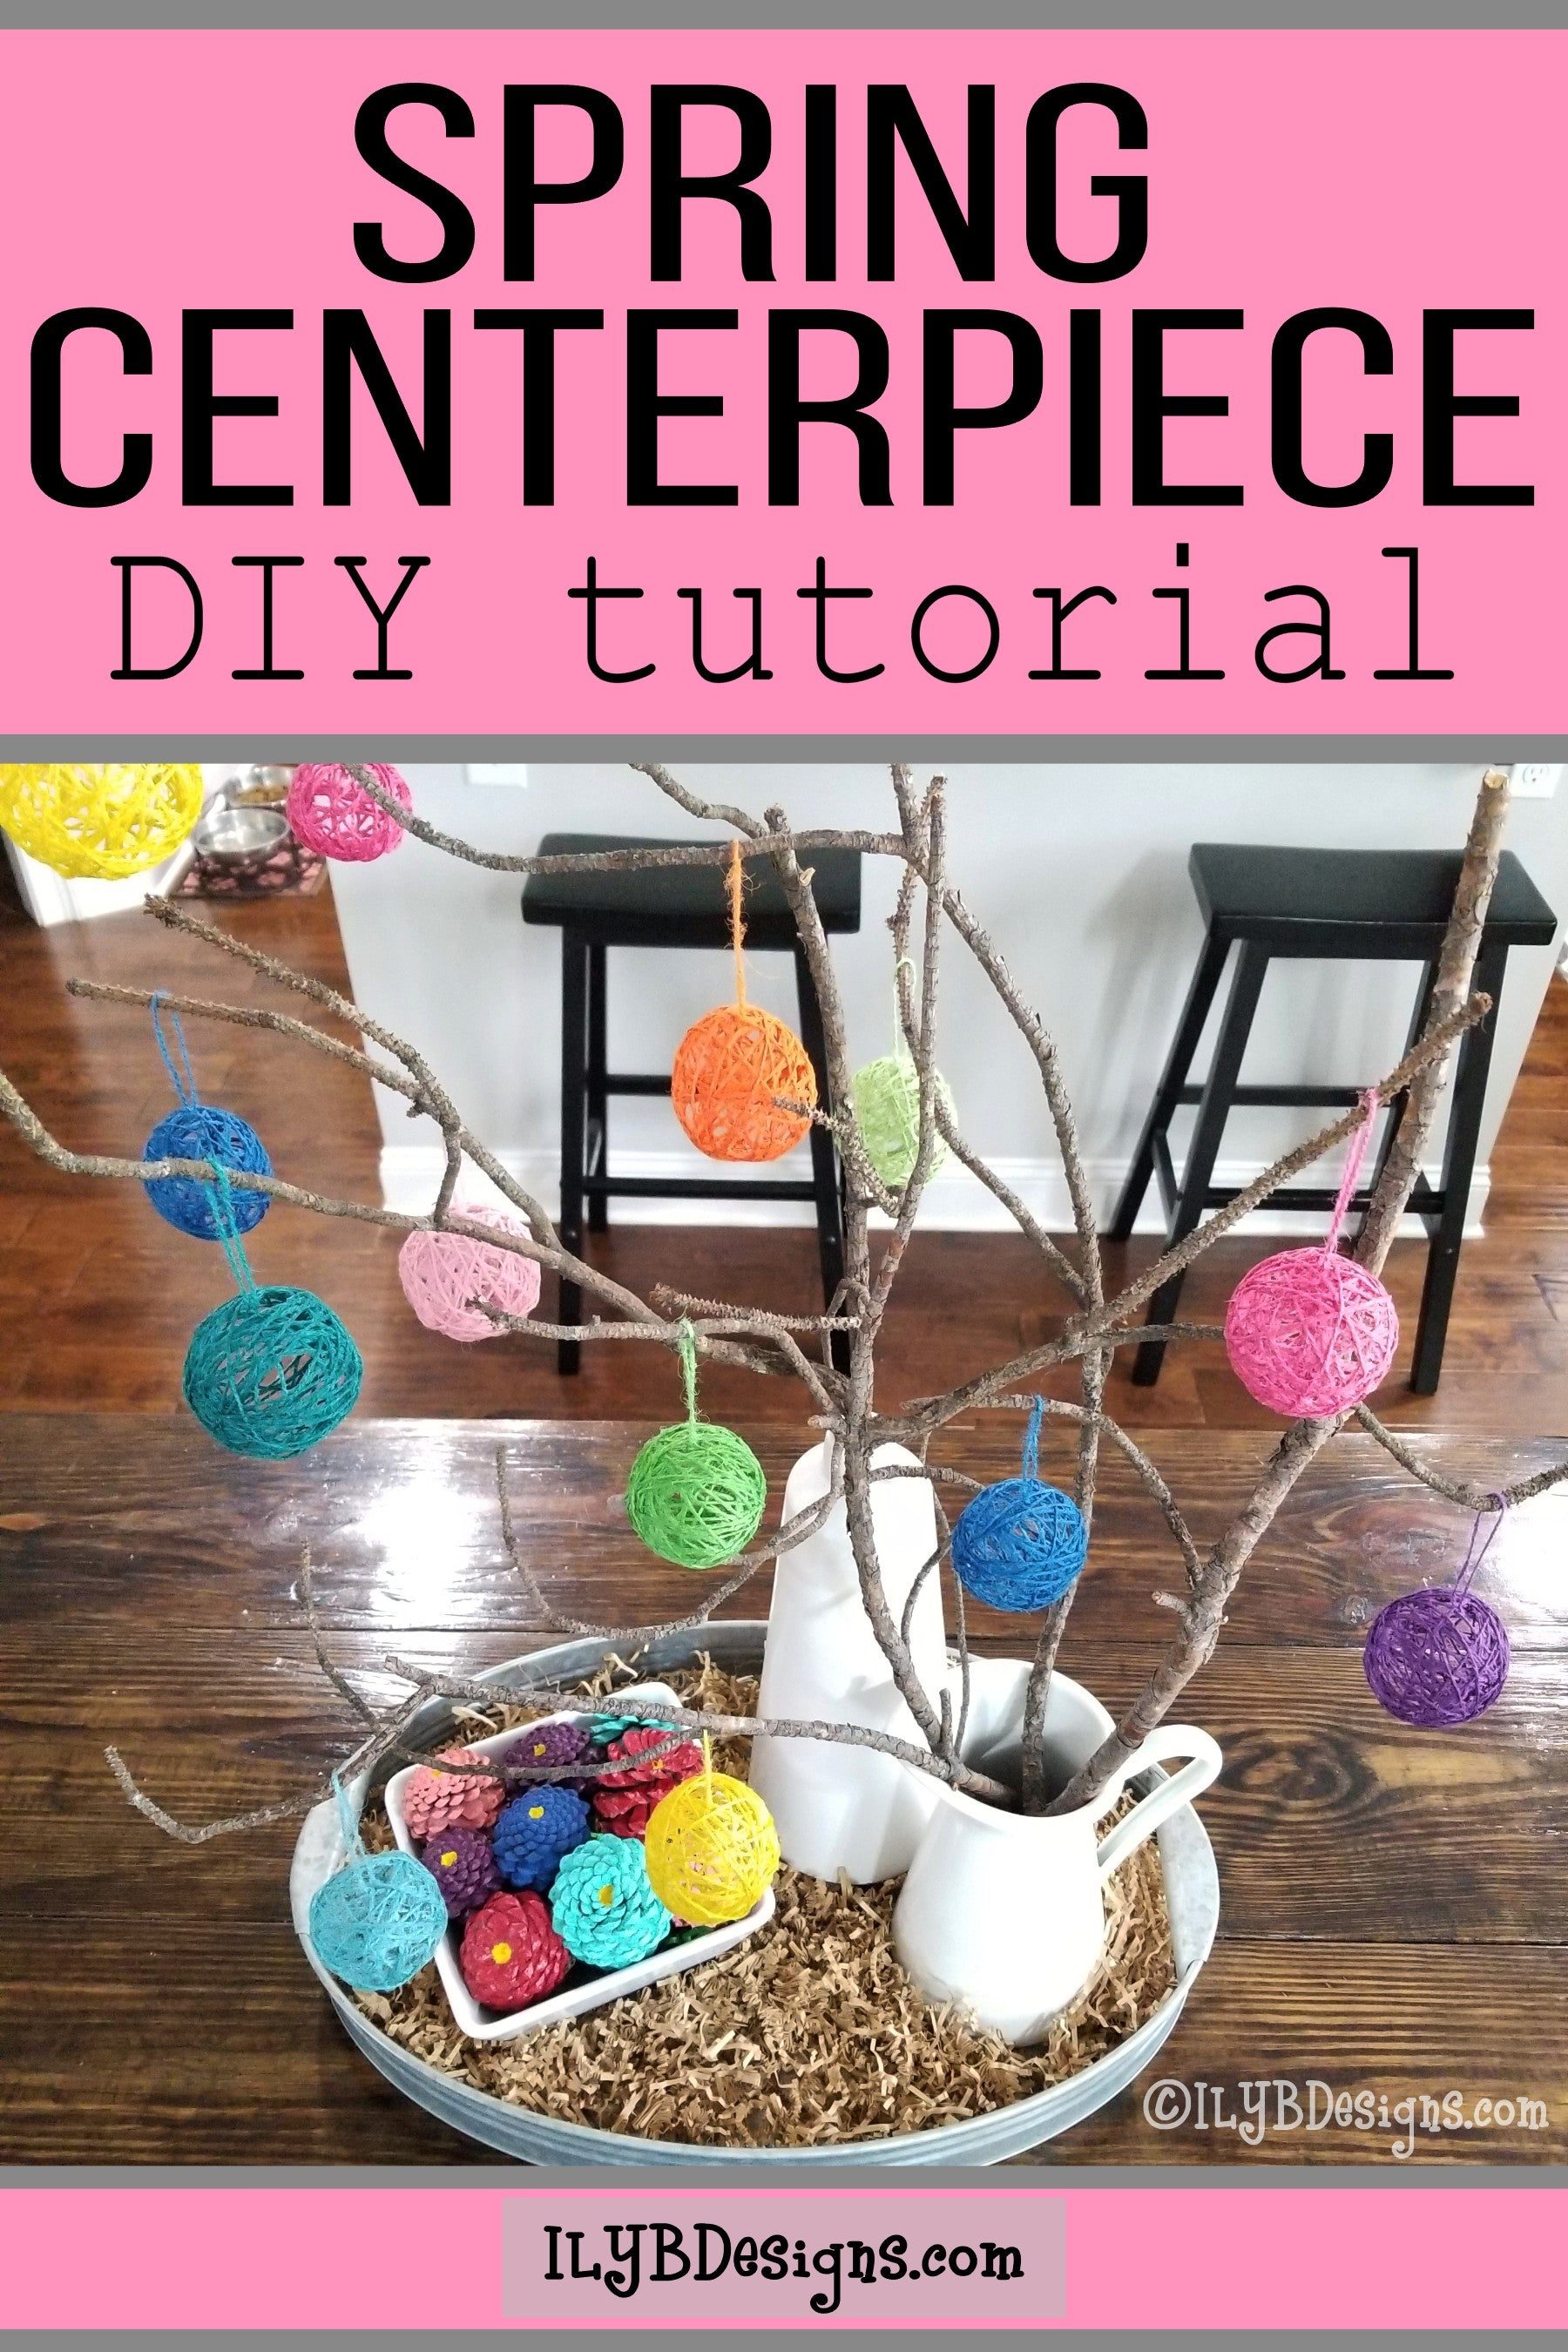 Spring Centerpiece DIY Tutorial